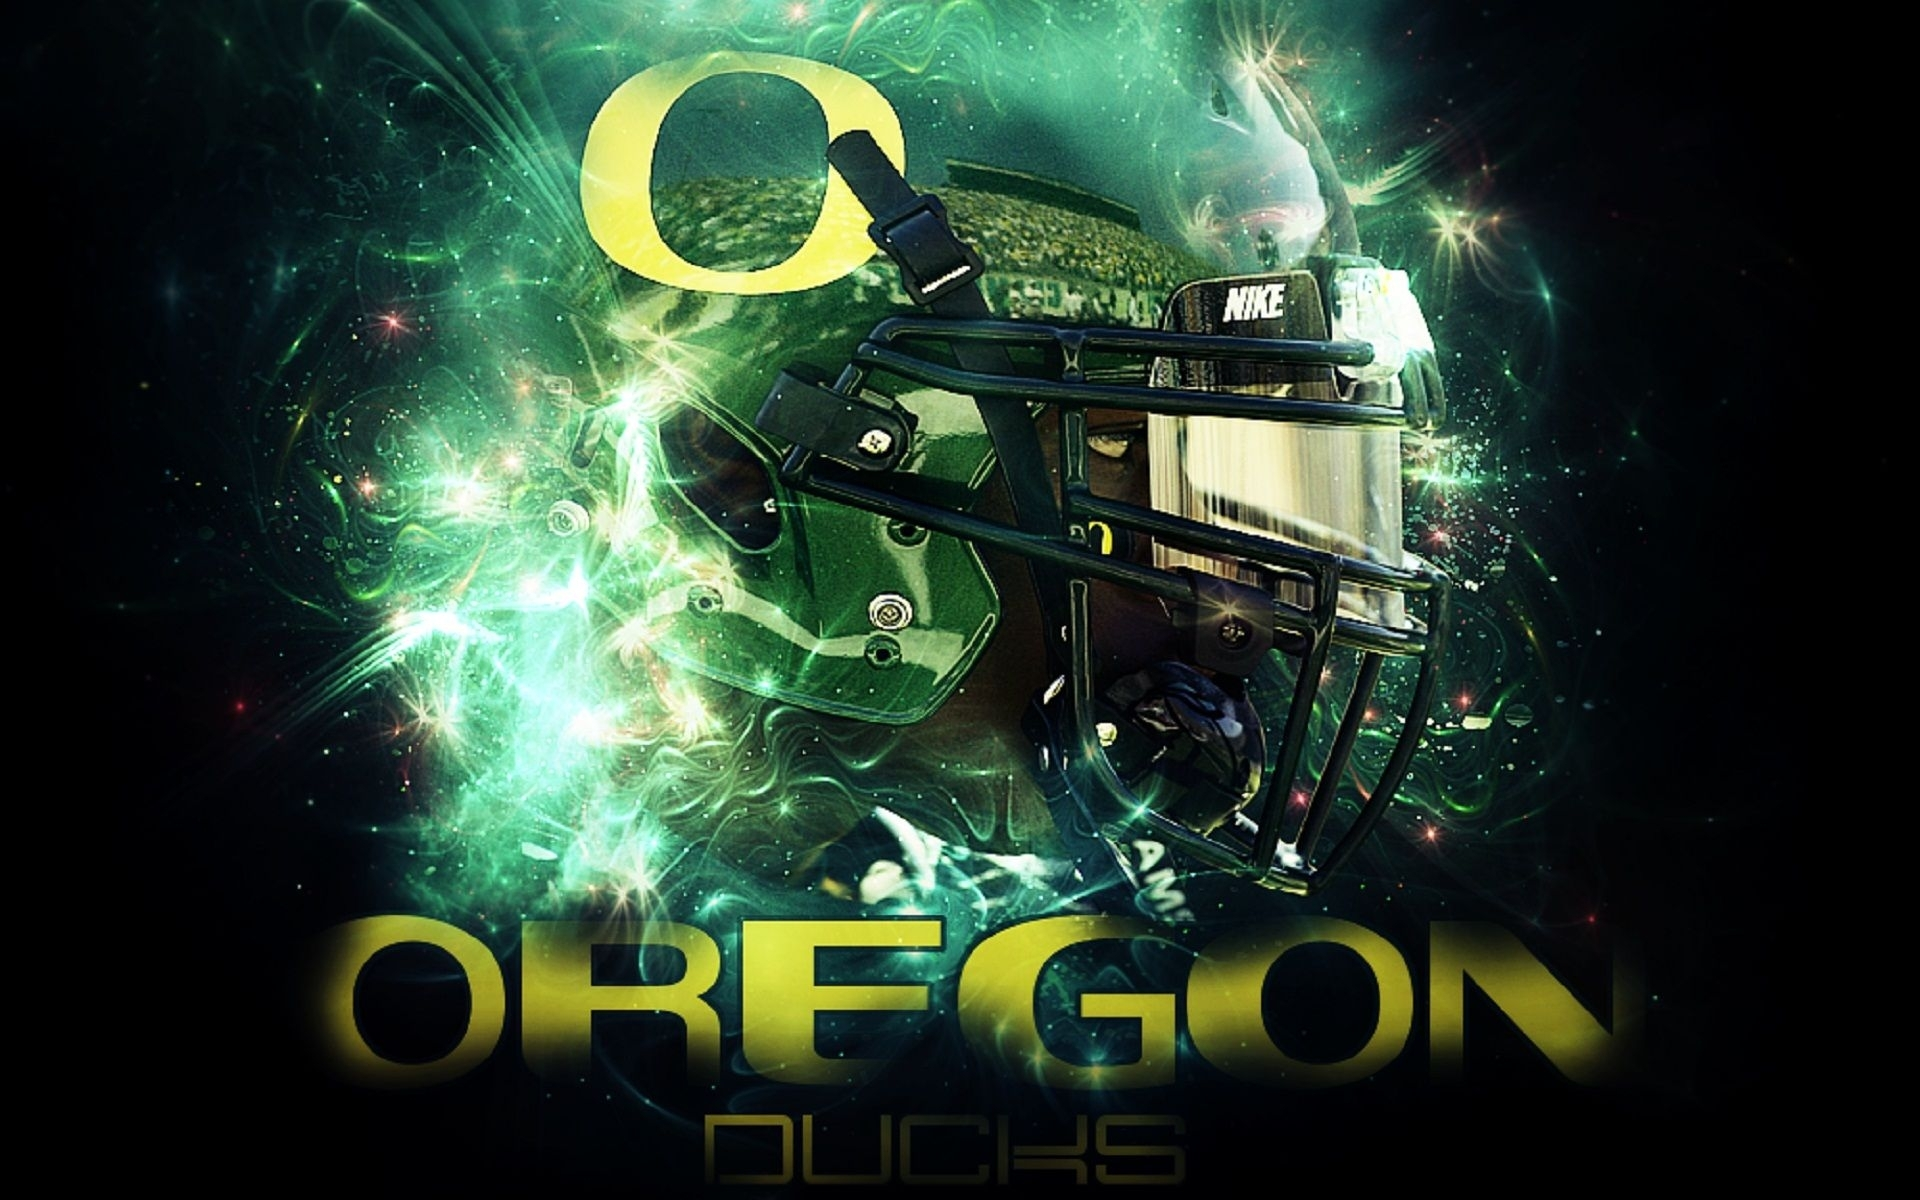 10 Most Popular Cool Oregon Ducks Wallpapers FULL HD 1920×1080 For PC Background